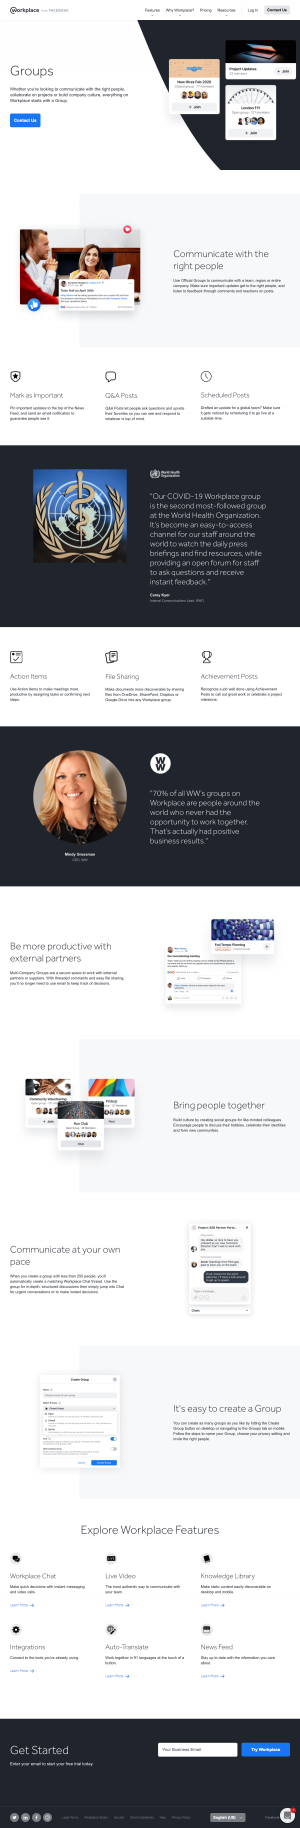 Workplace – Features page 2